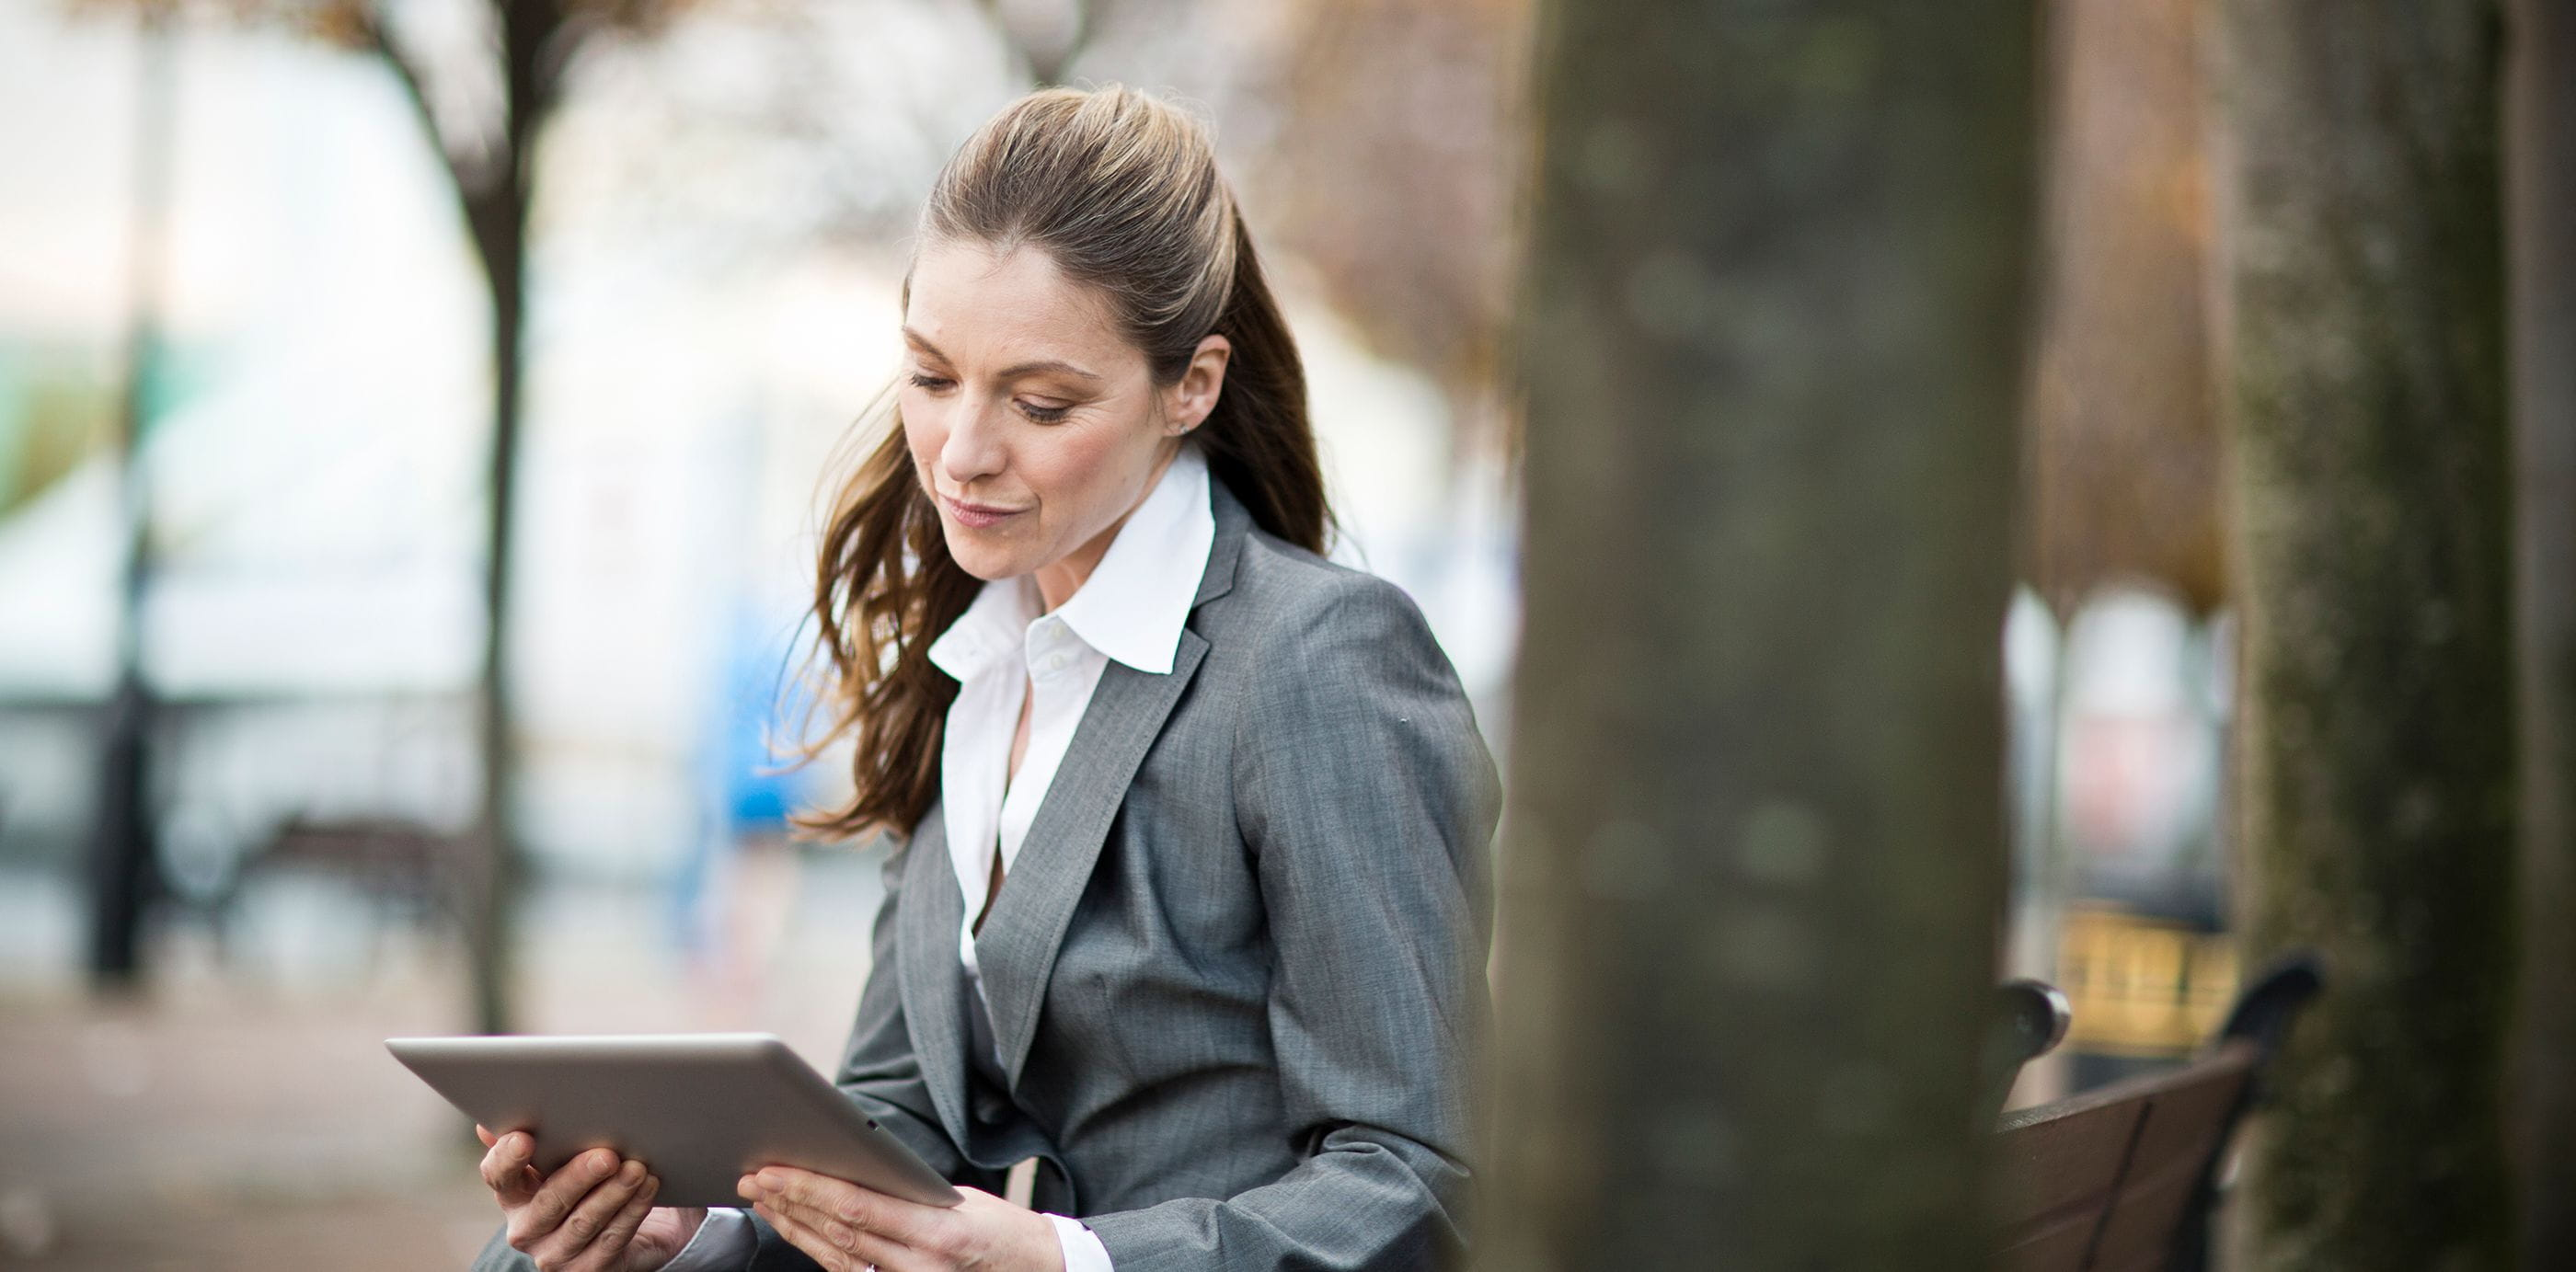 Brother OmniJoin woman outside working on tablet